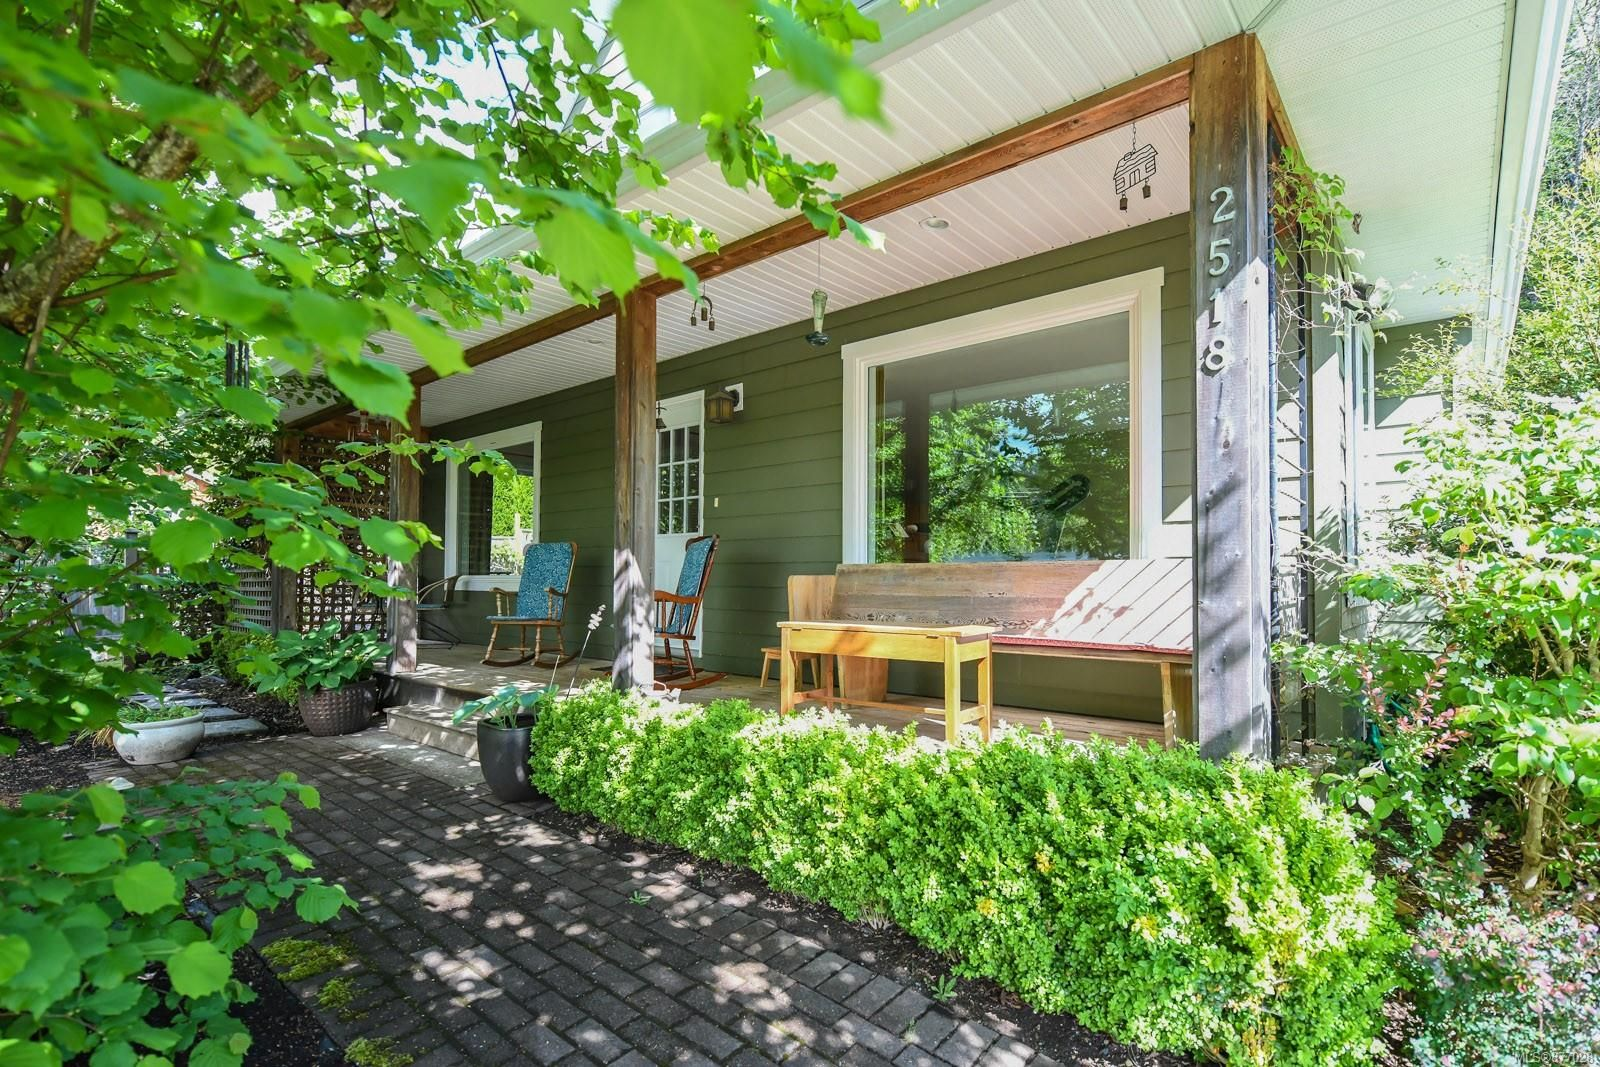 Main Photo: 2518 Dunsmuir Ave in : CV Cumberland House for sale (Comox Valley)  : MLS®# 877028